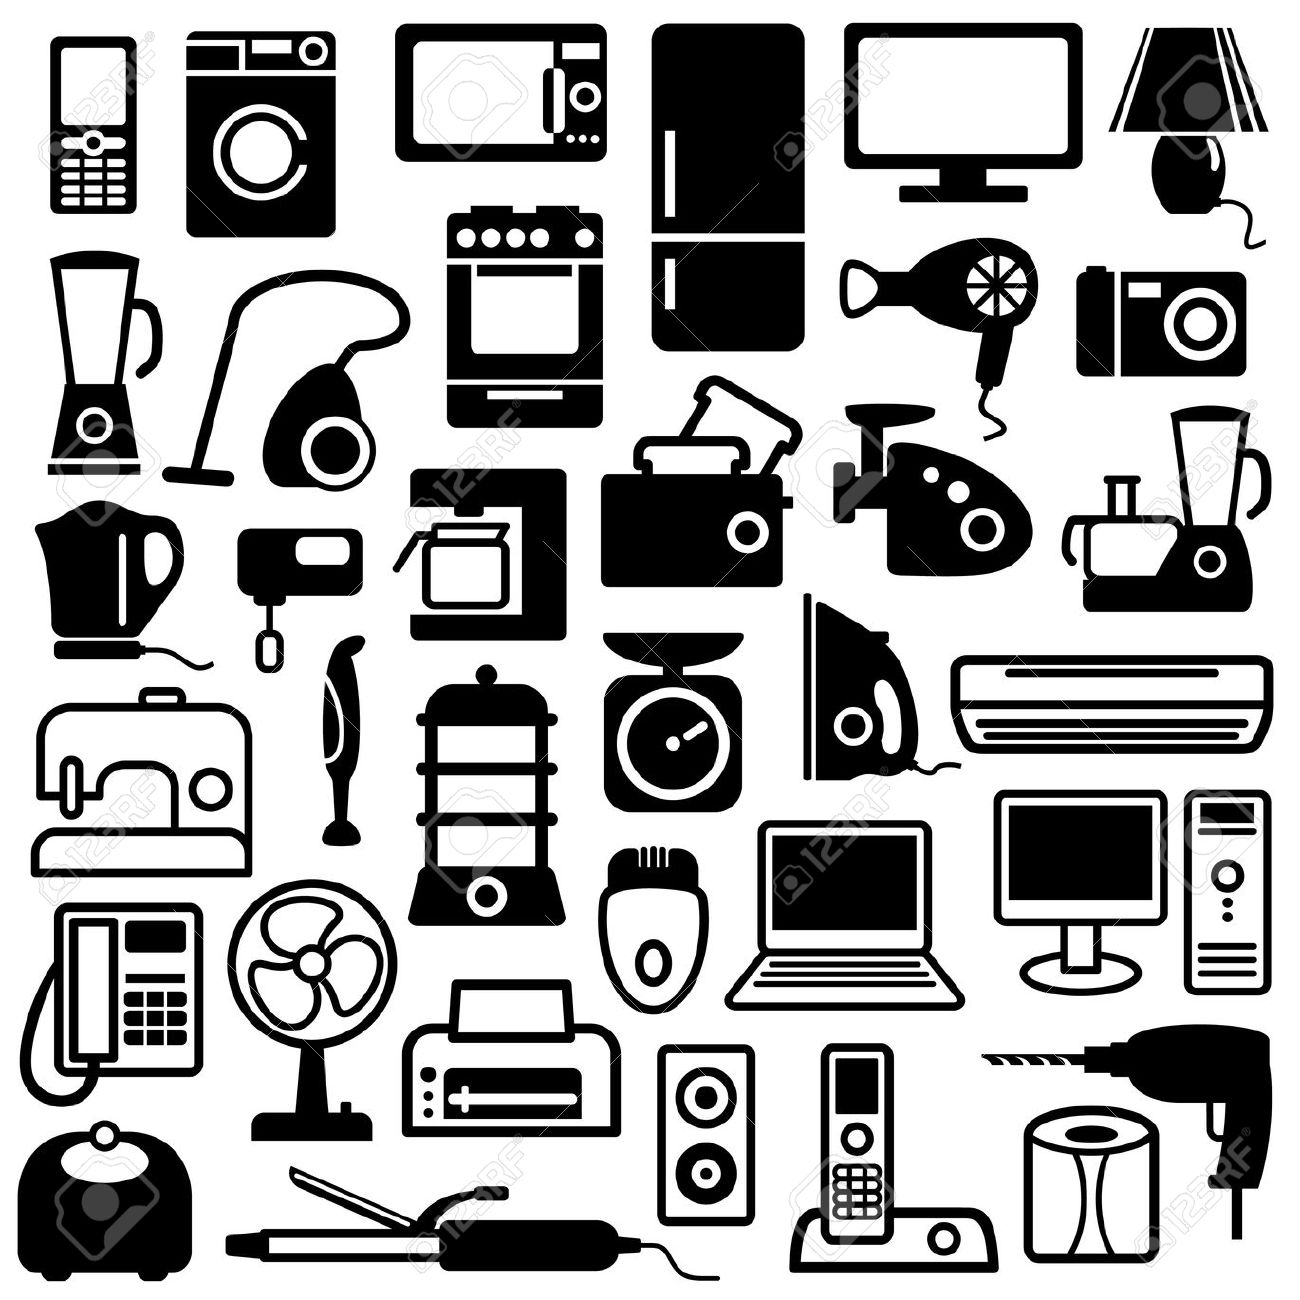 Home Appliances Icons Royalty Free Cliparts, Vectors, And Stock.